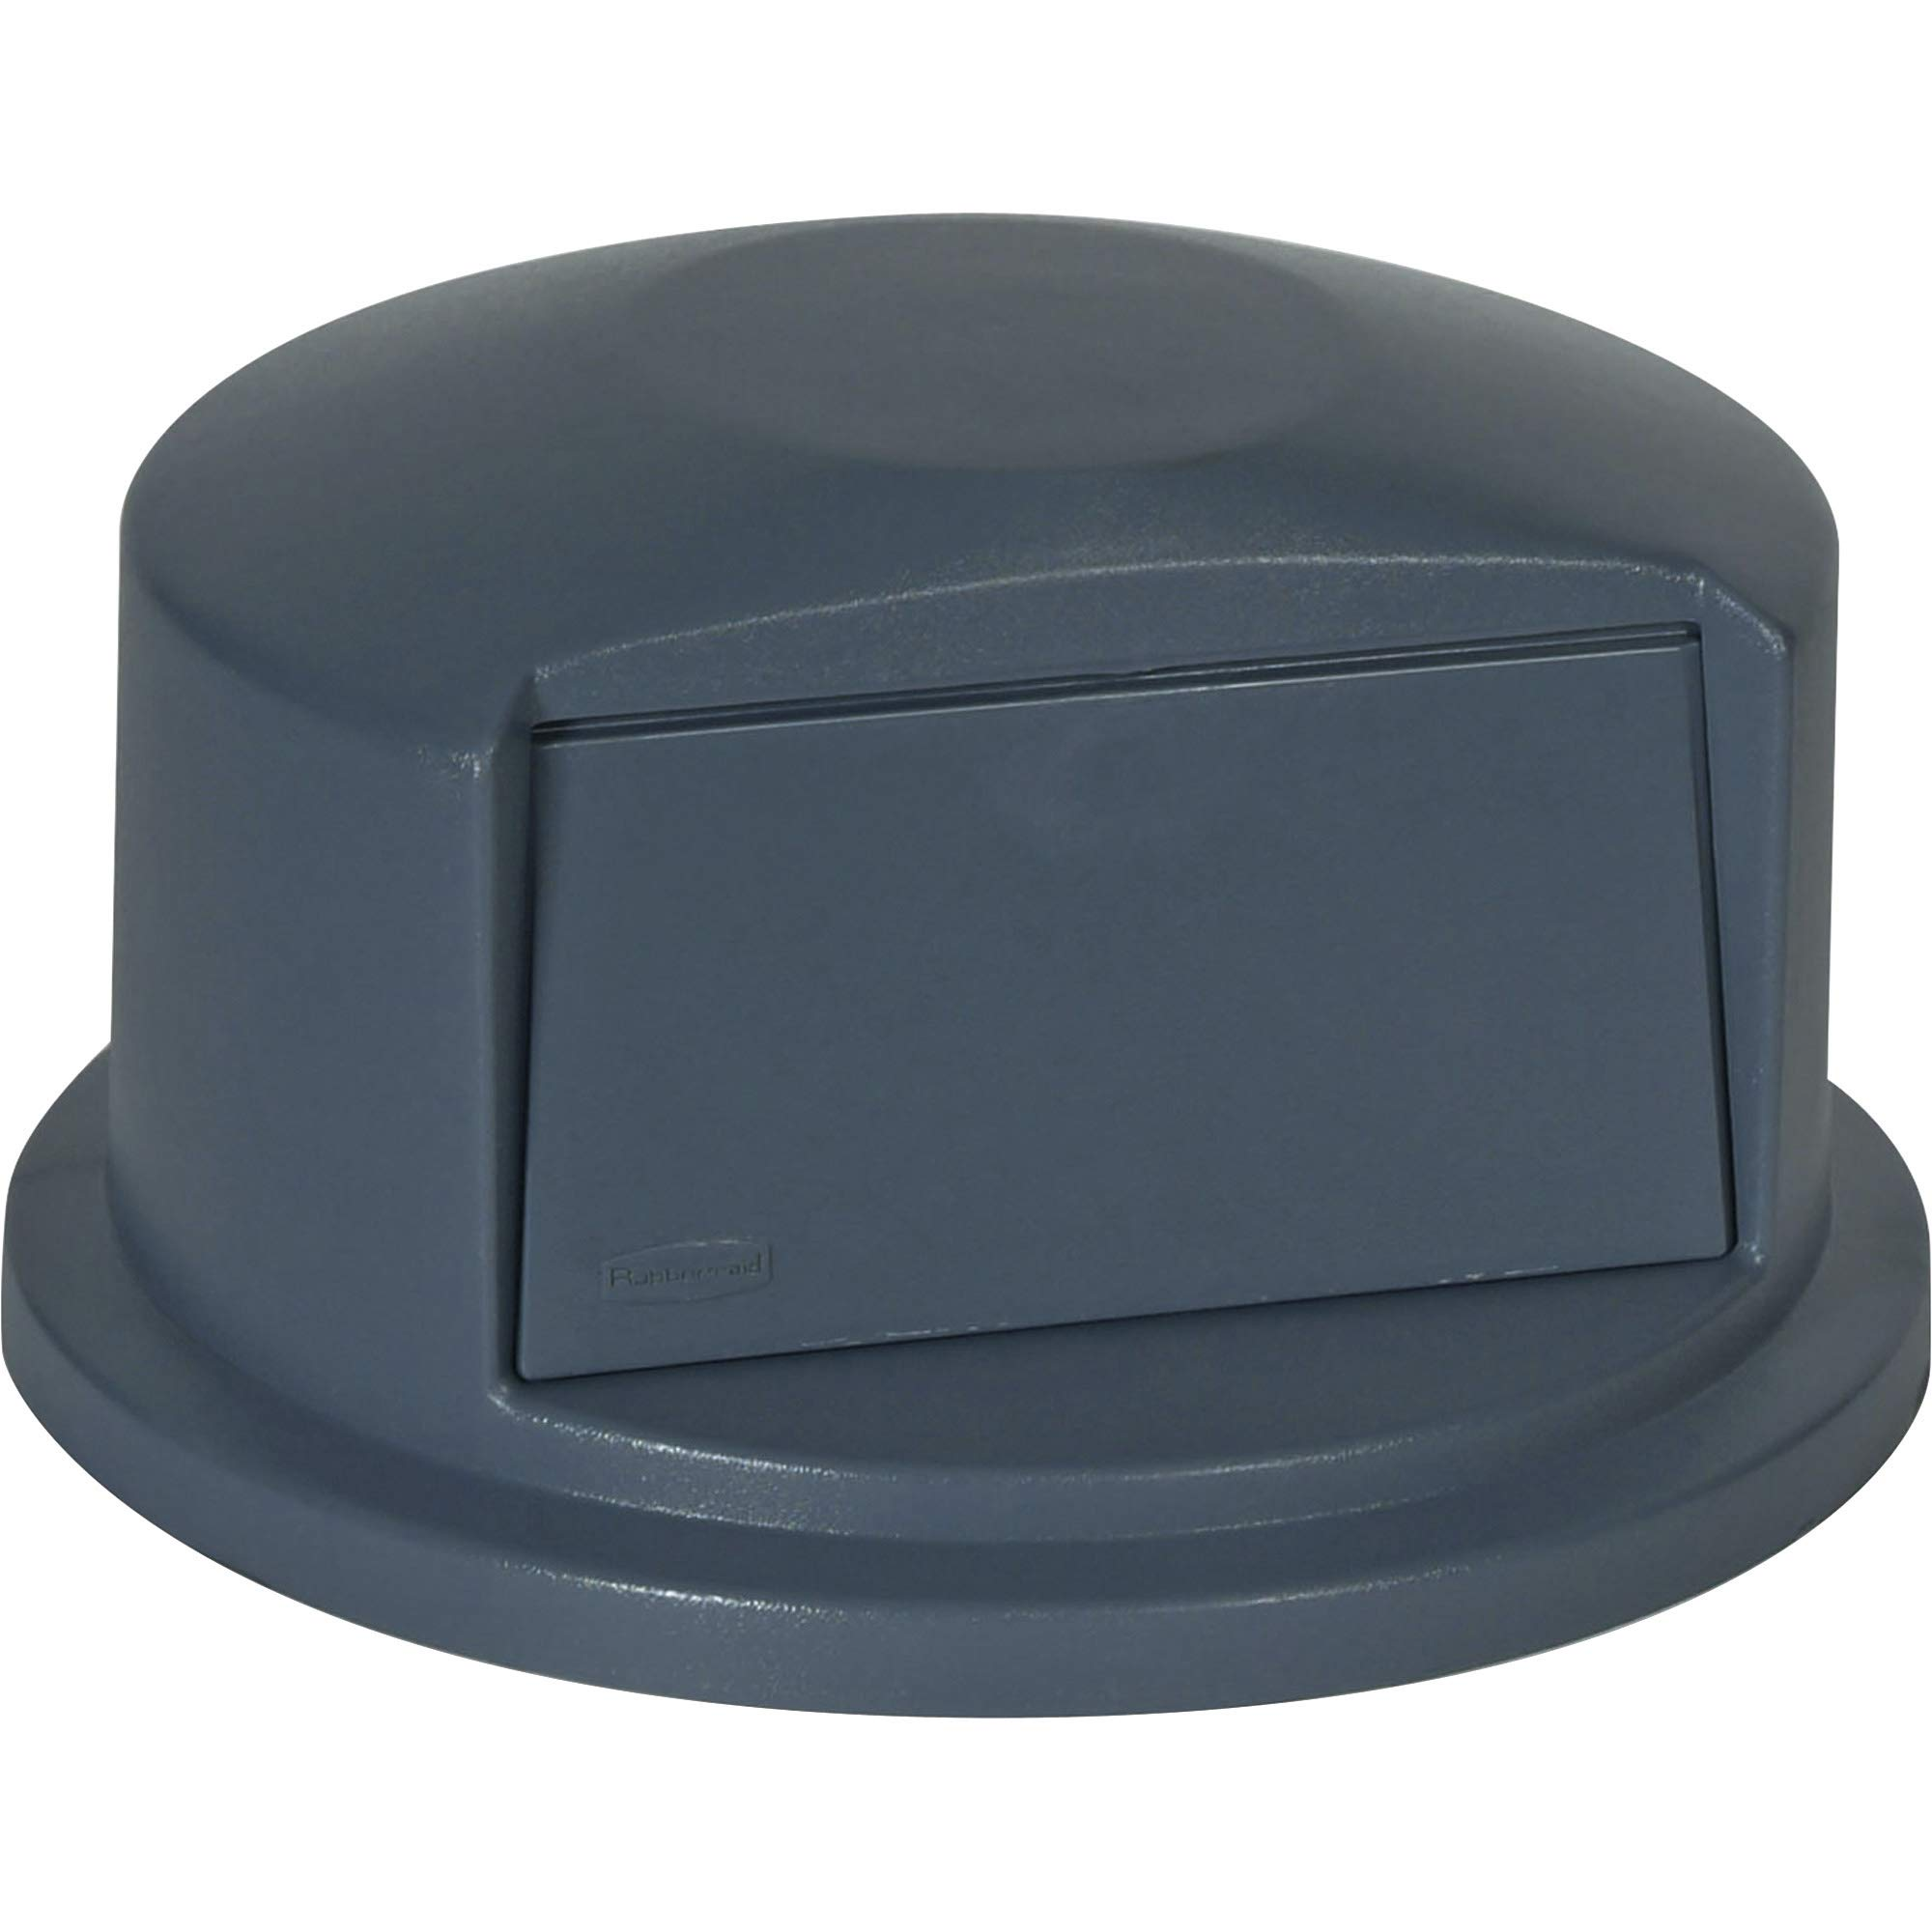 Rubbermaid Commercial Heavy-Duty BRUTE Dome Swing Top Door Lid for 32 Gallon Waste/Utility Containers, Plastic, Gray (FG263788GRAY) by Rubbermaid Commercial Products